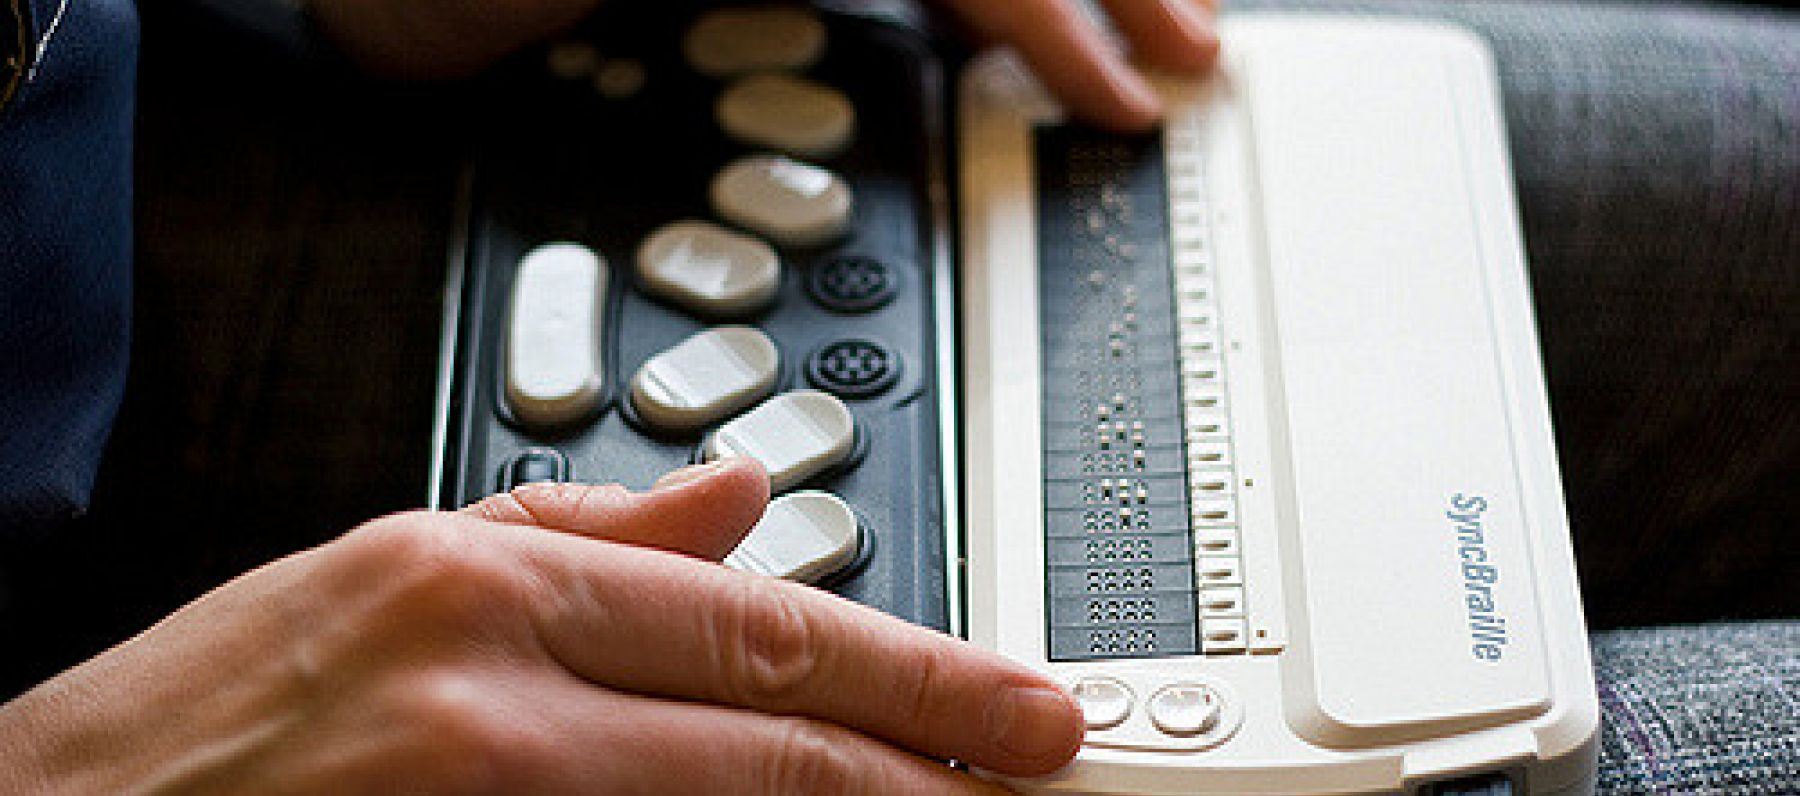 A refreshable braille display